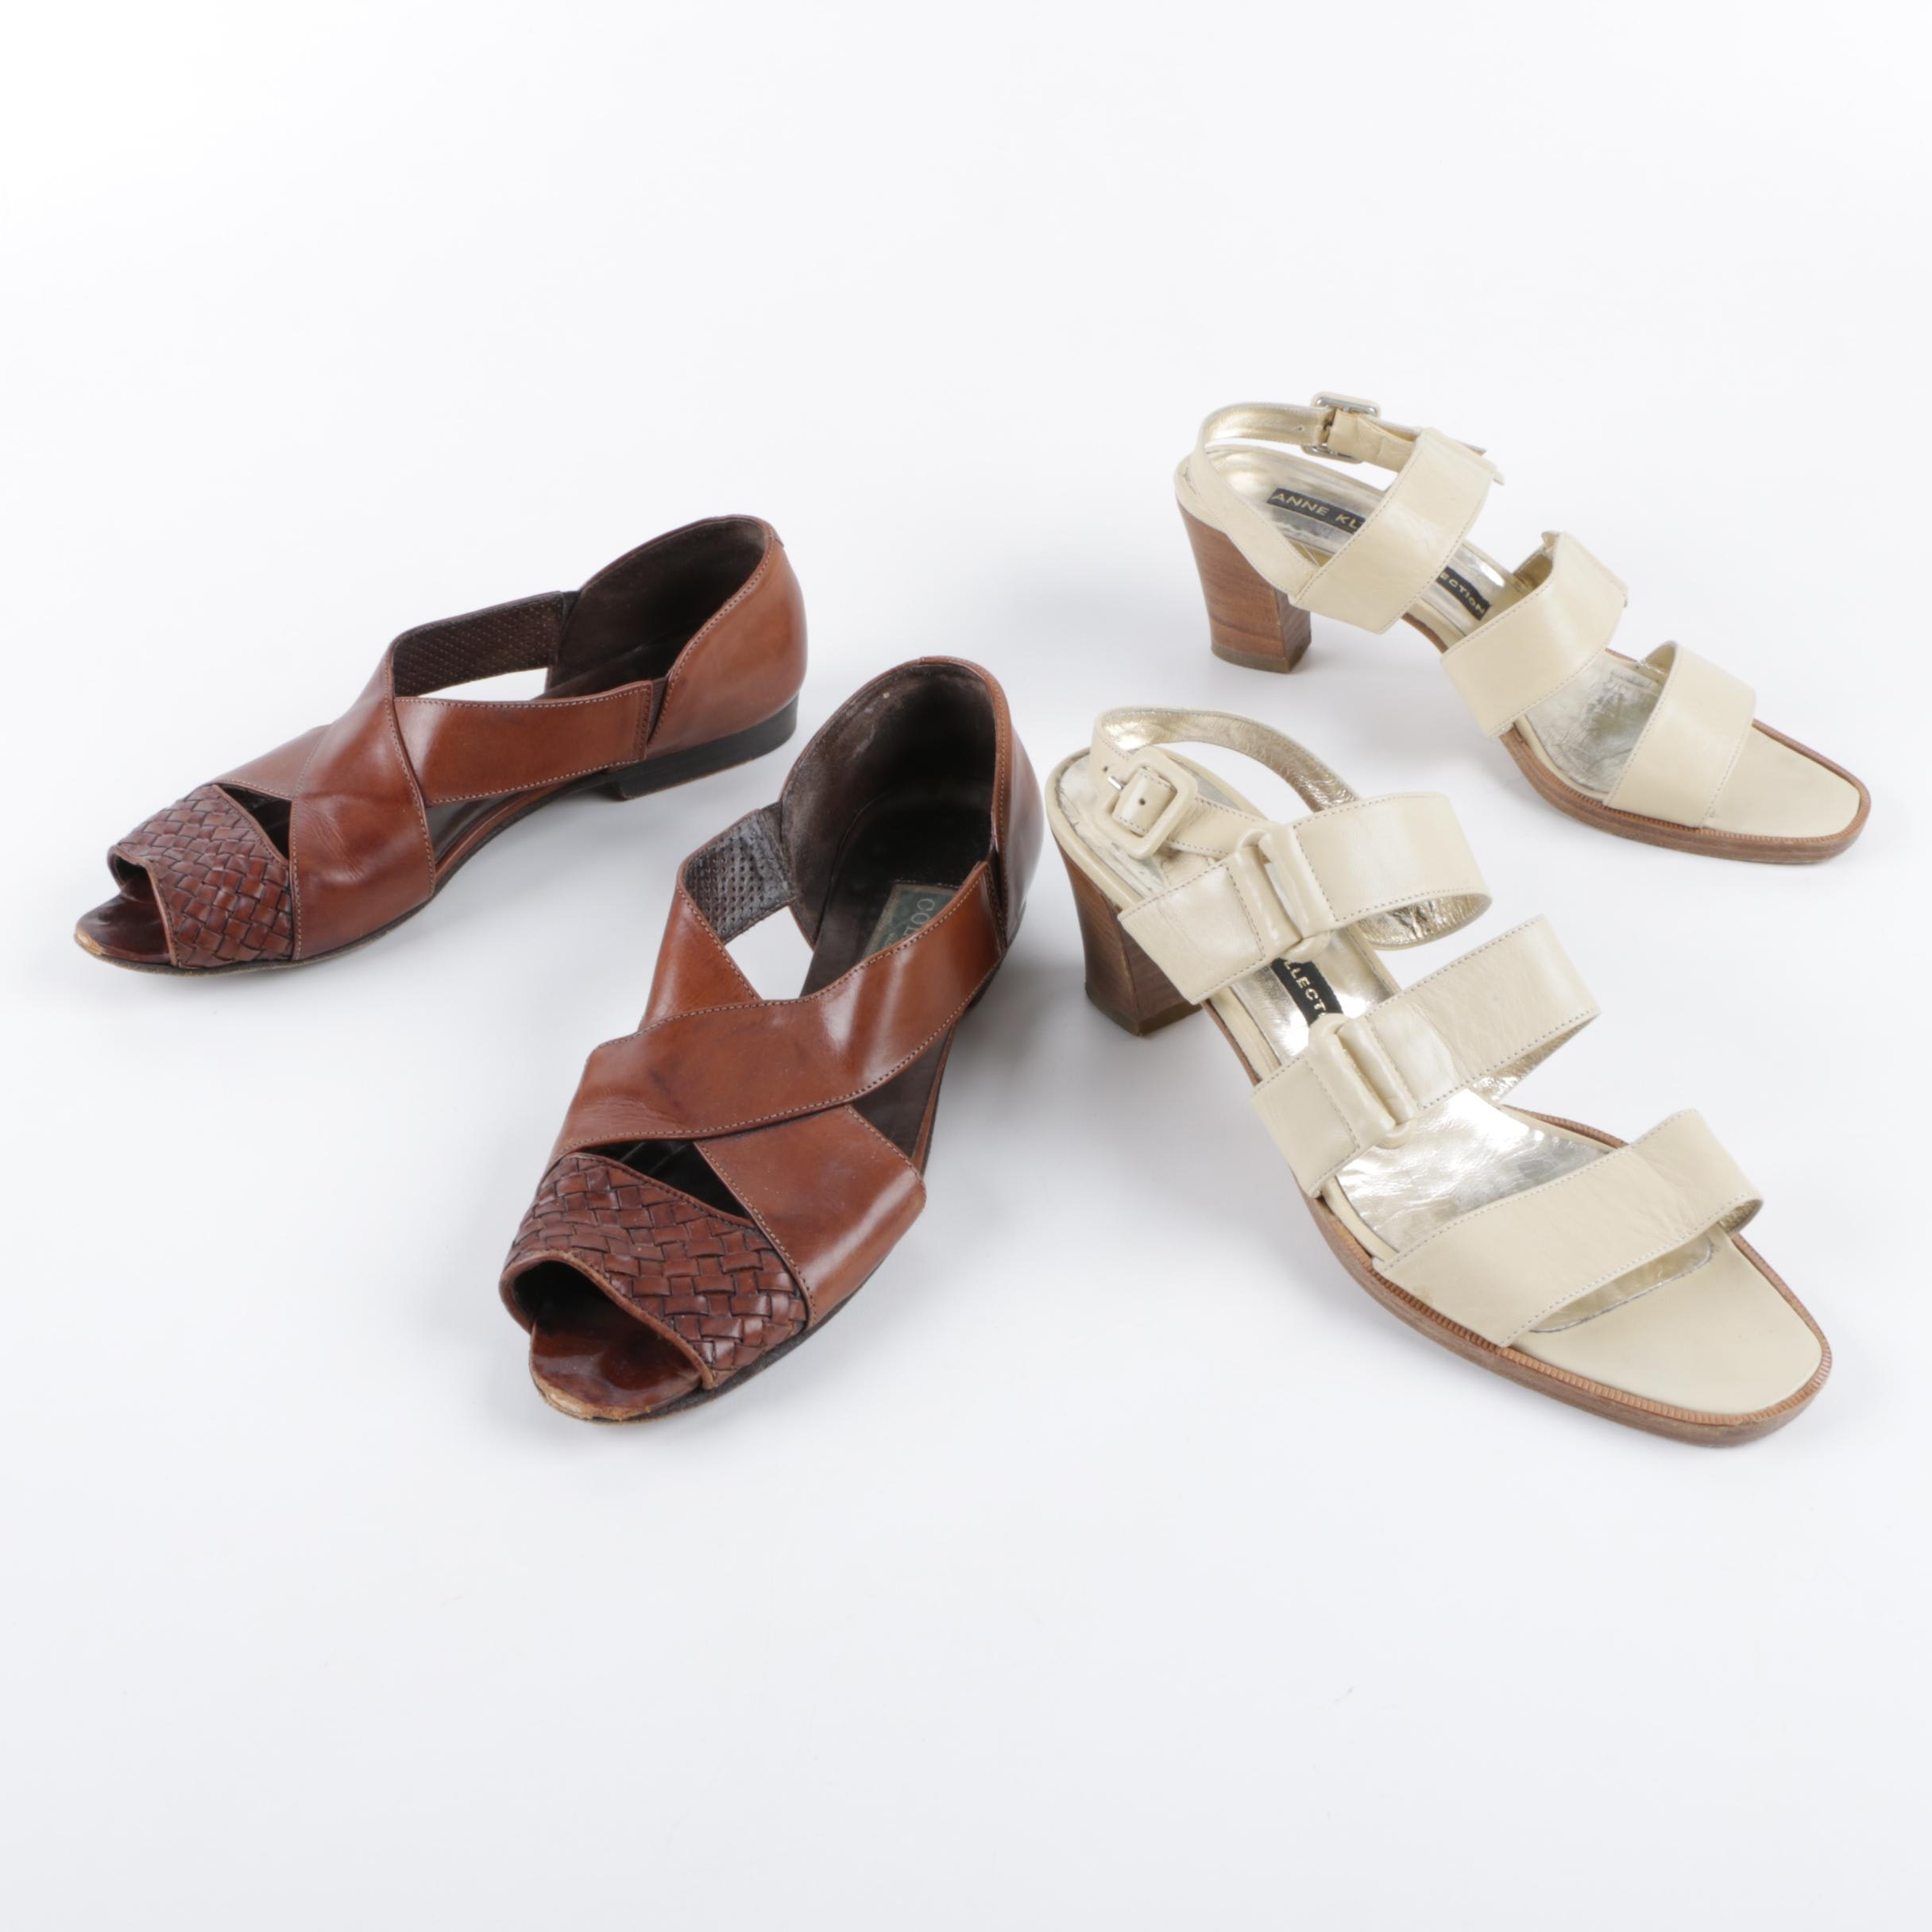 Women's Anne Klein and Cole Haan Sandals